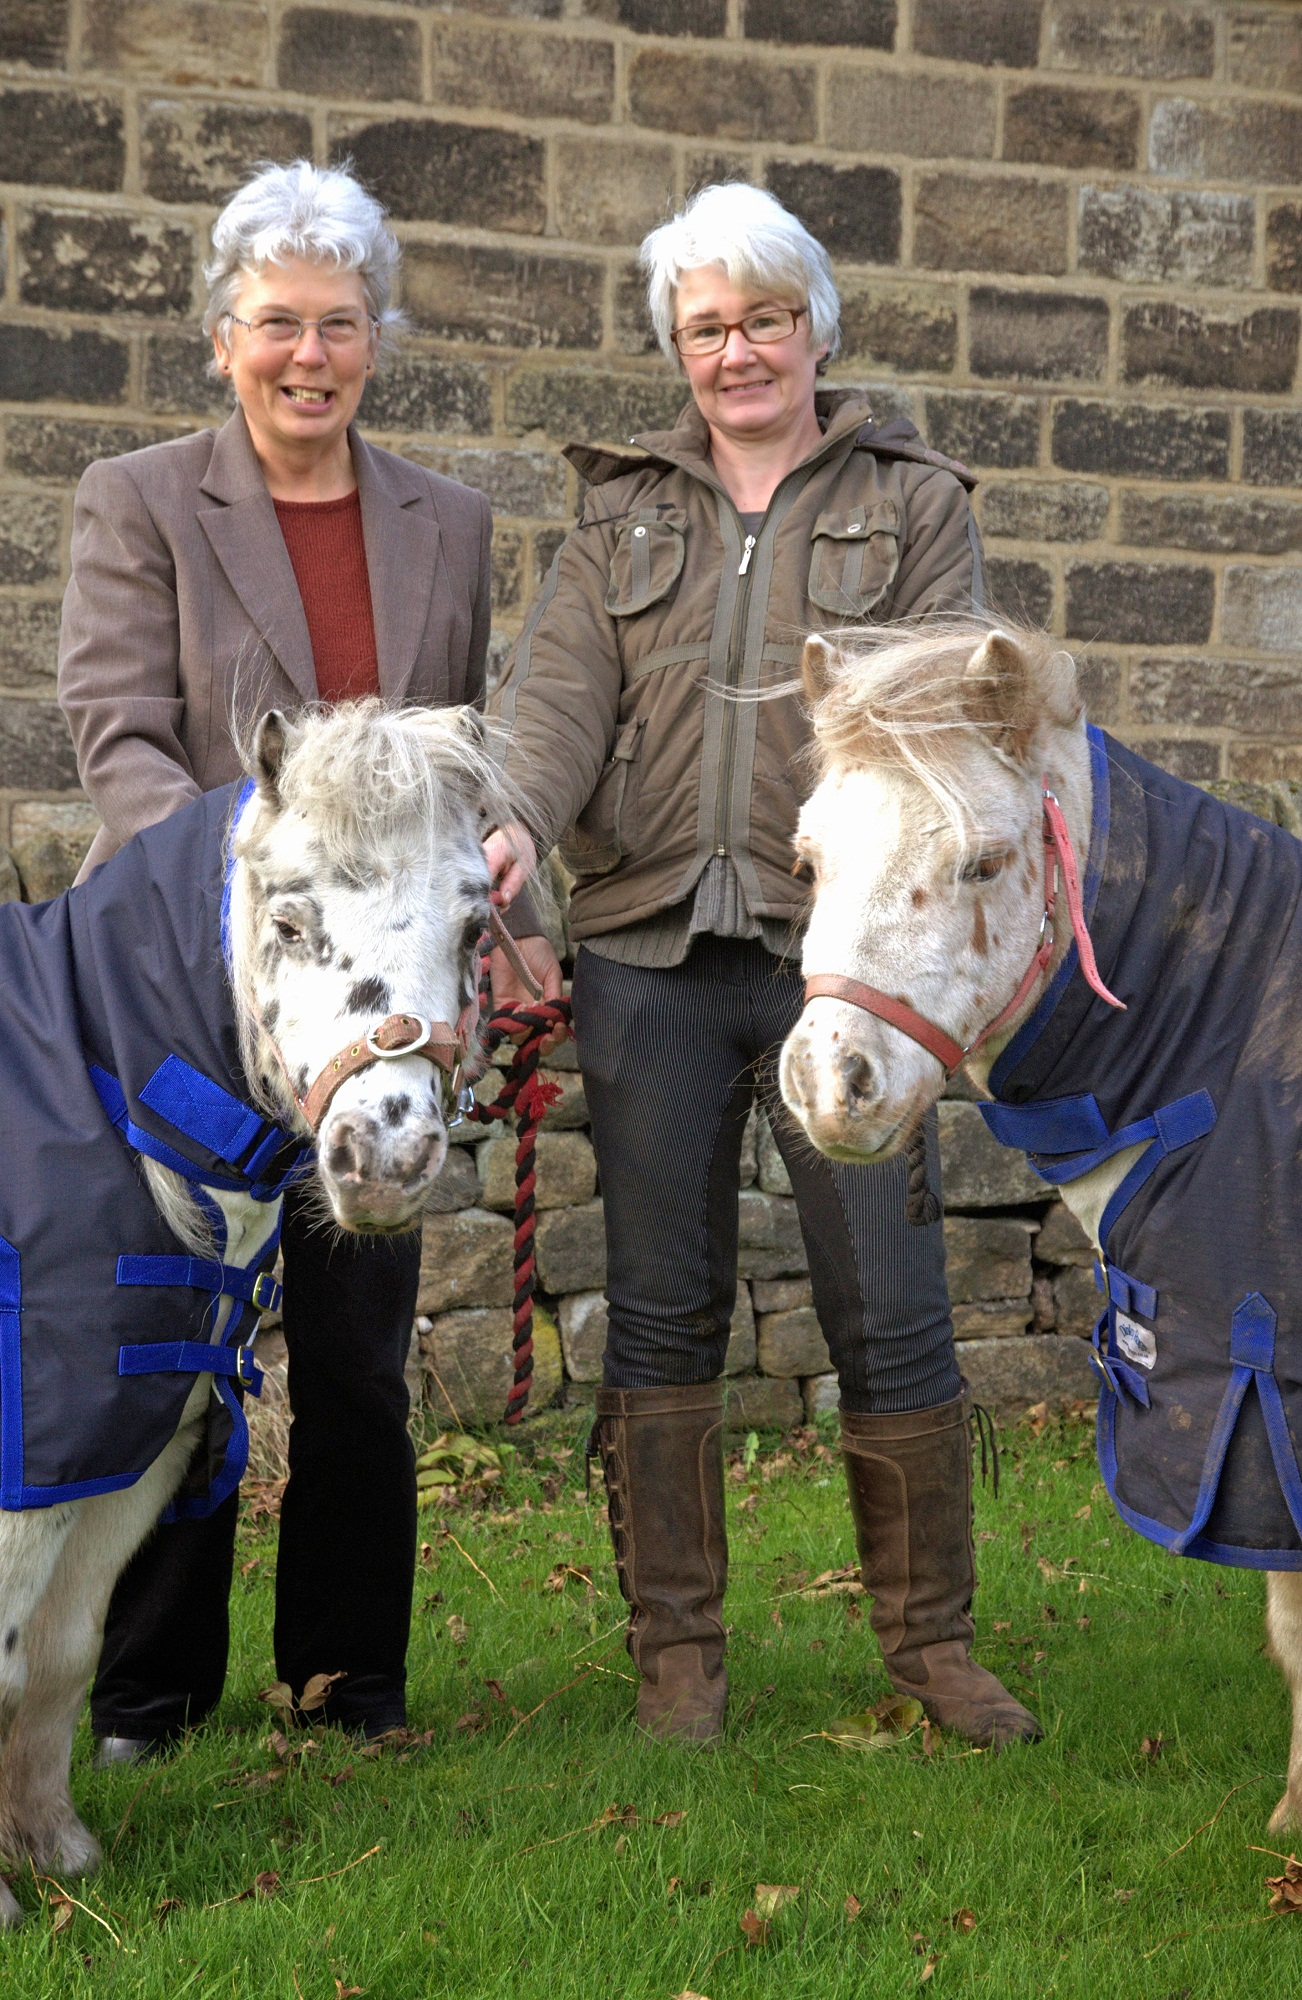 Karen Leaver, from the Craven Trust, and Susan Dunne, from Pat A Pony, with Alfie and Spot